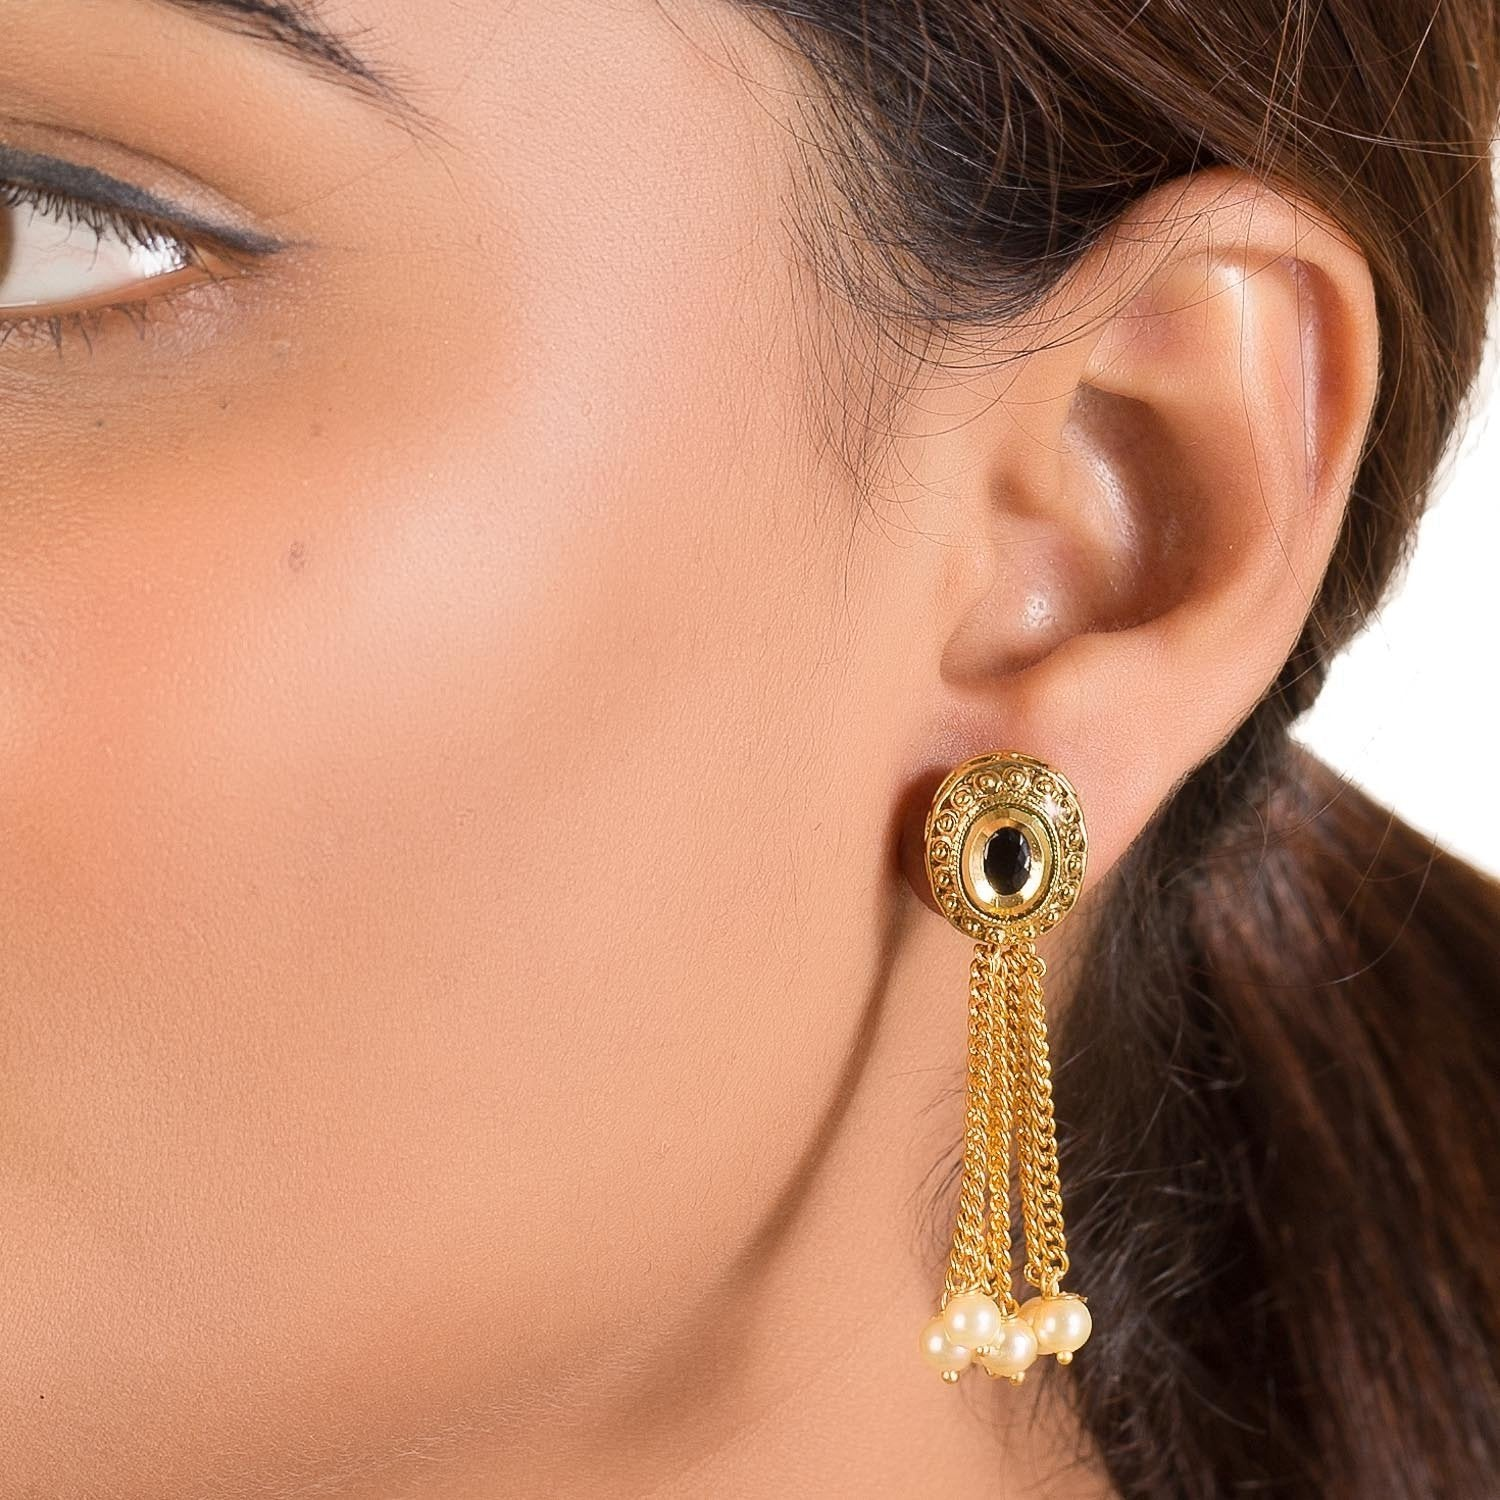 Gold Plated Earrings With Chains